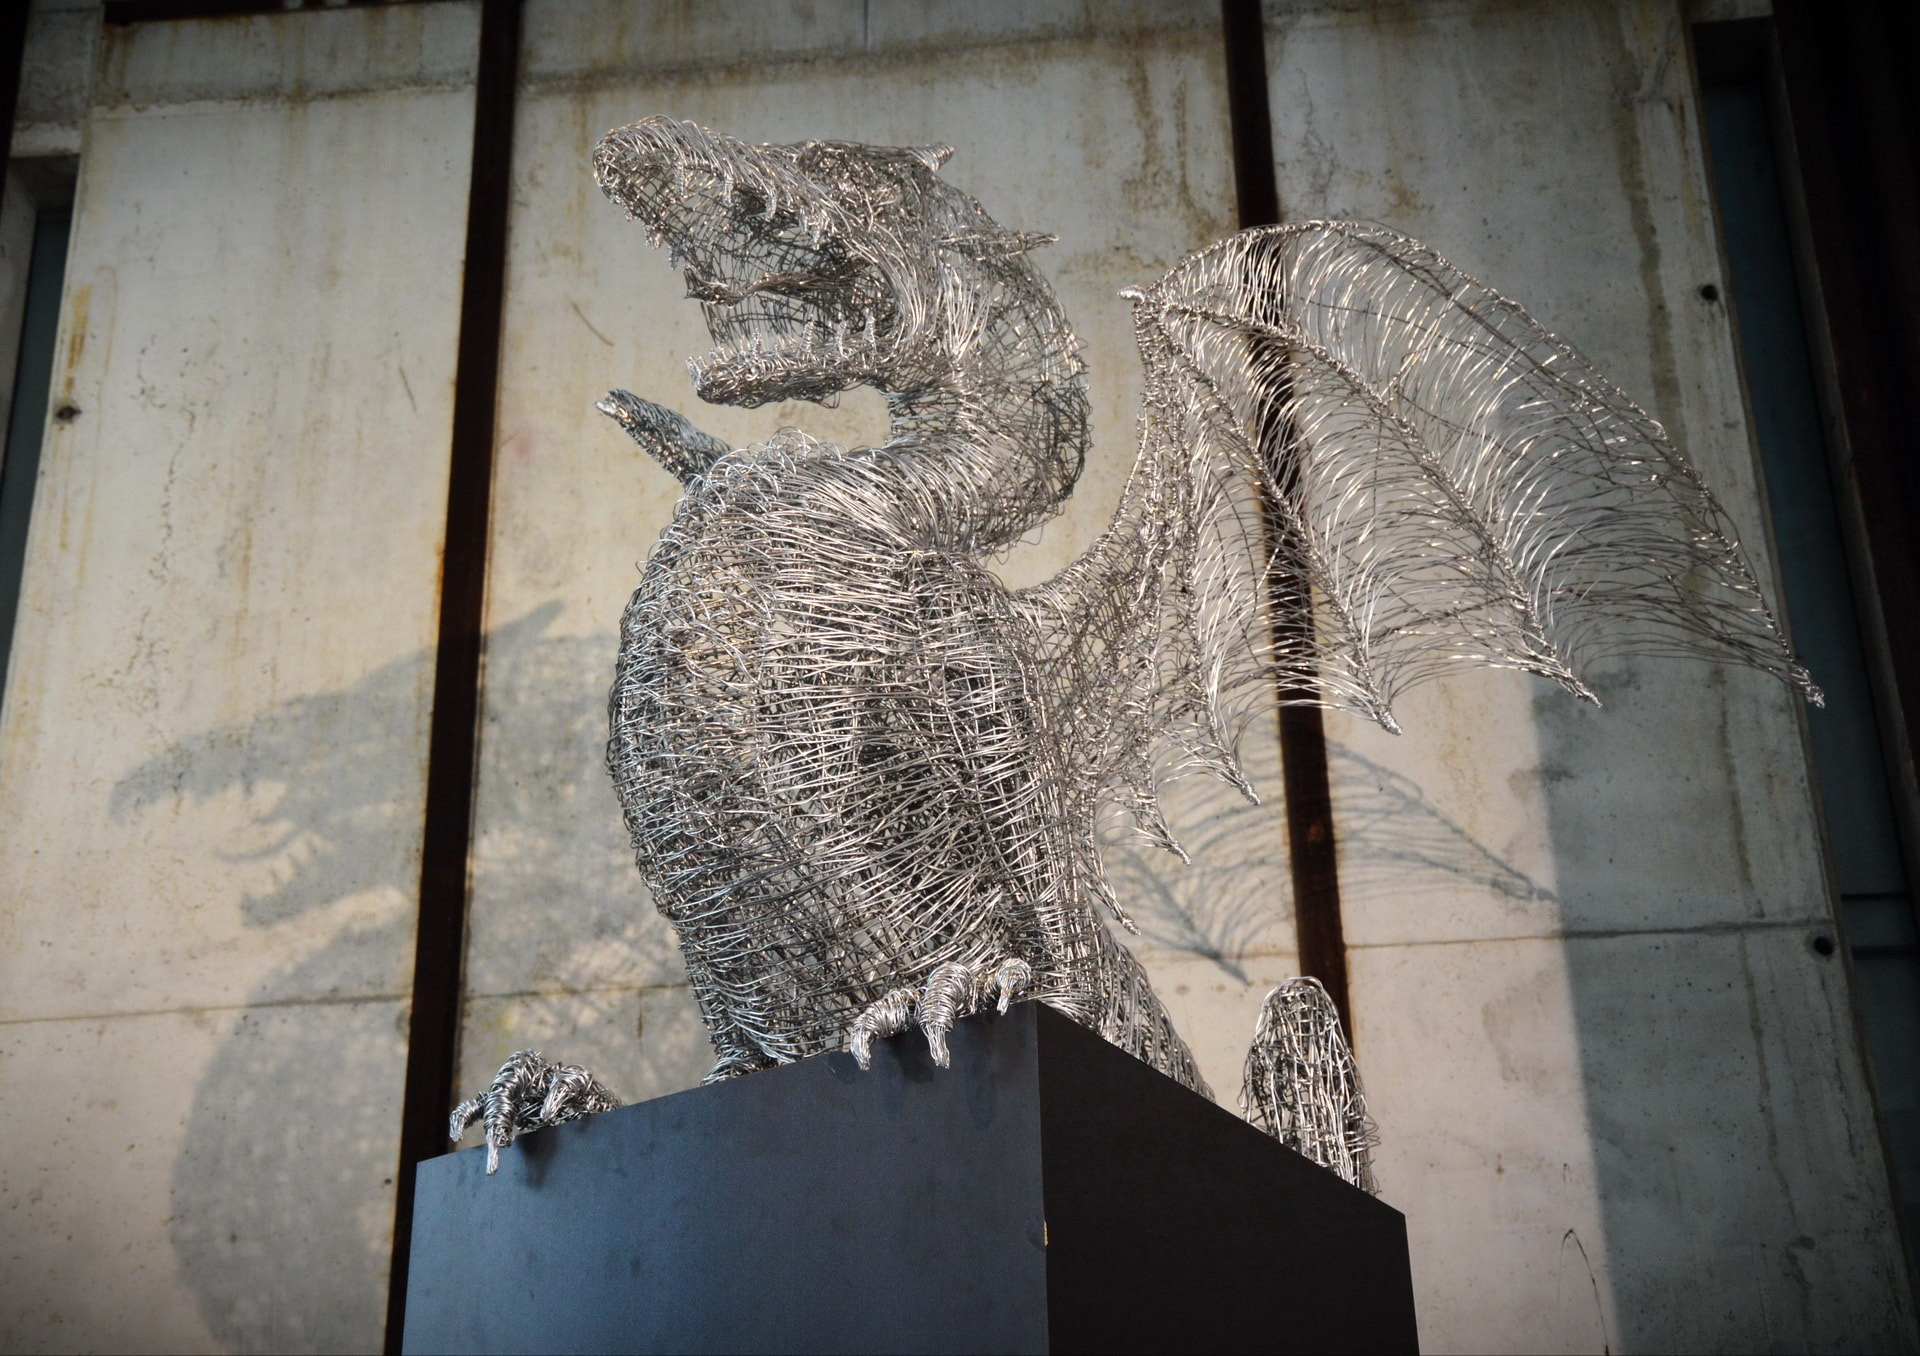 Dragon is the symbol of Ljubljana